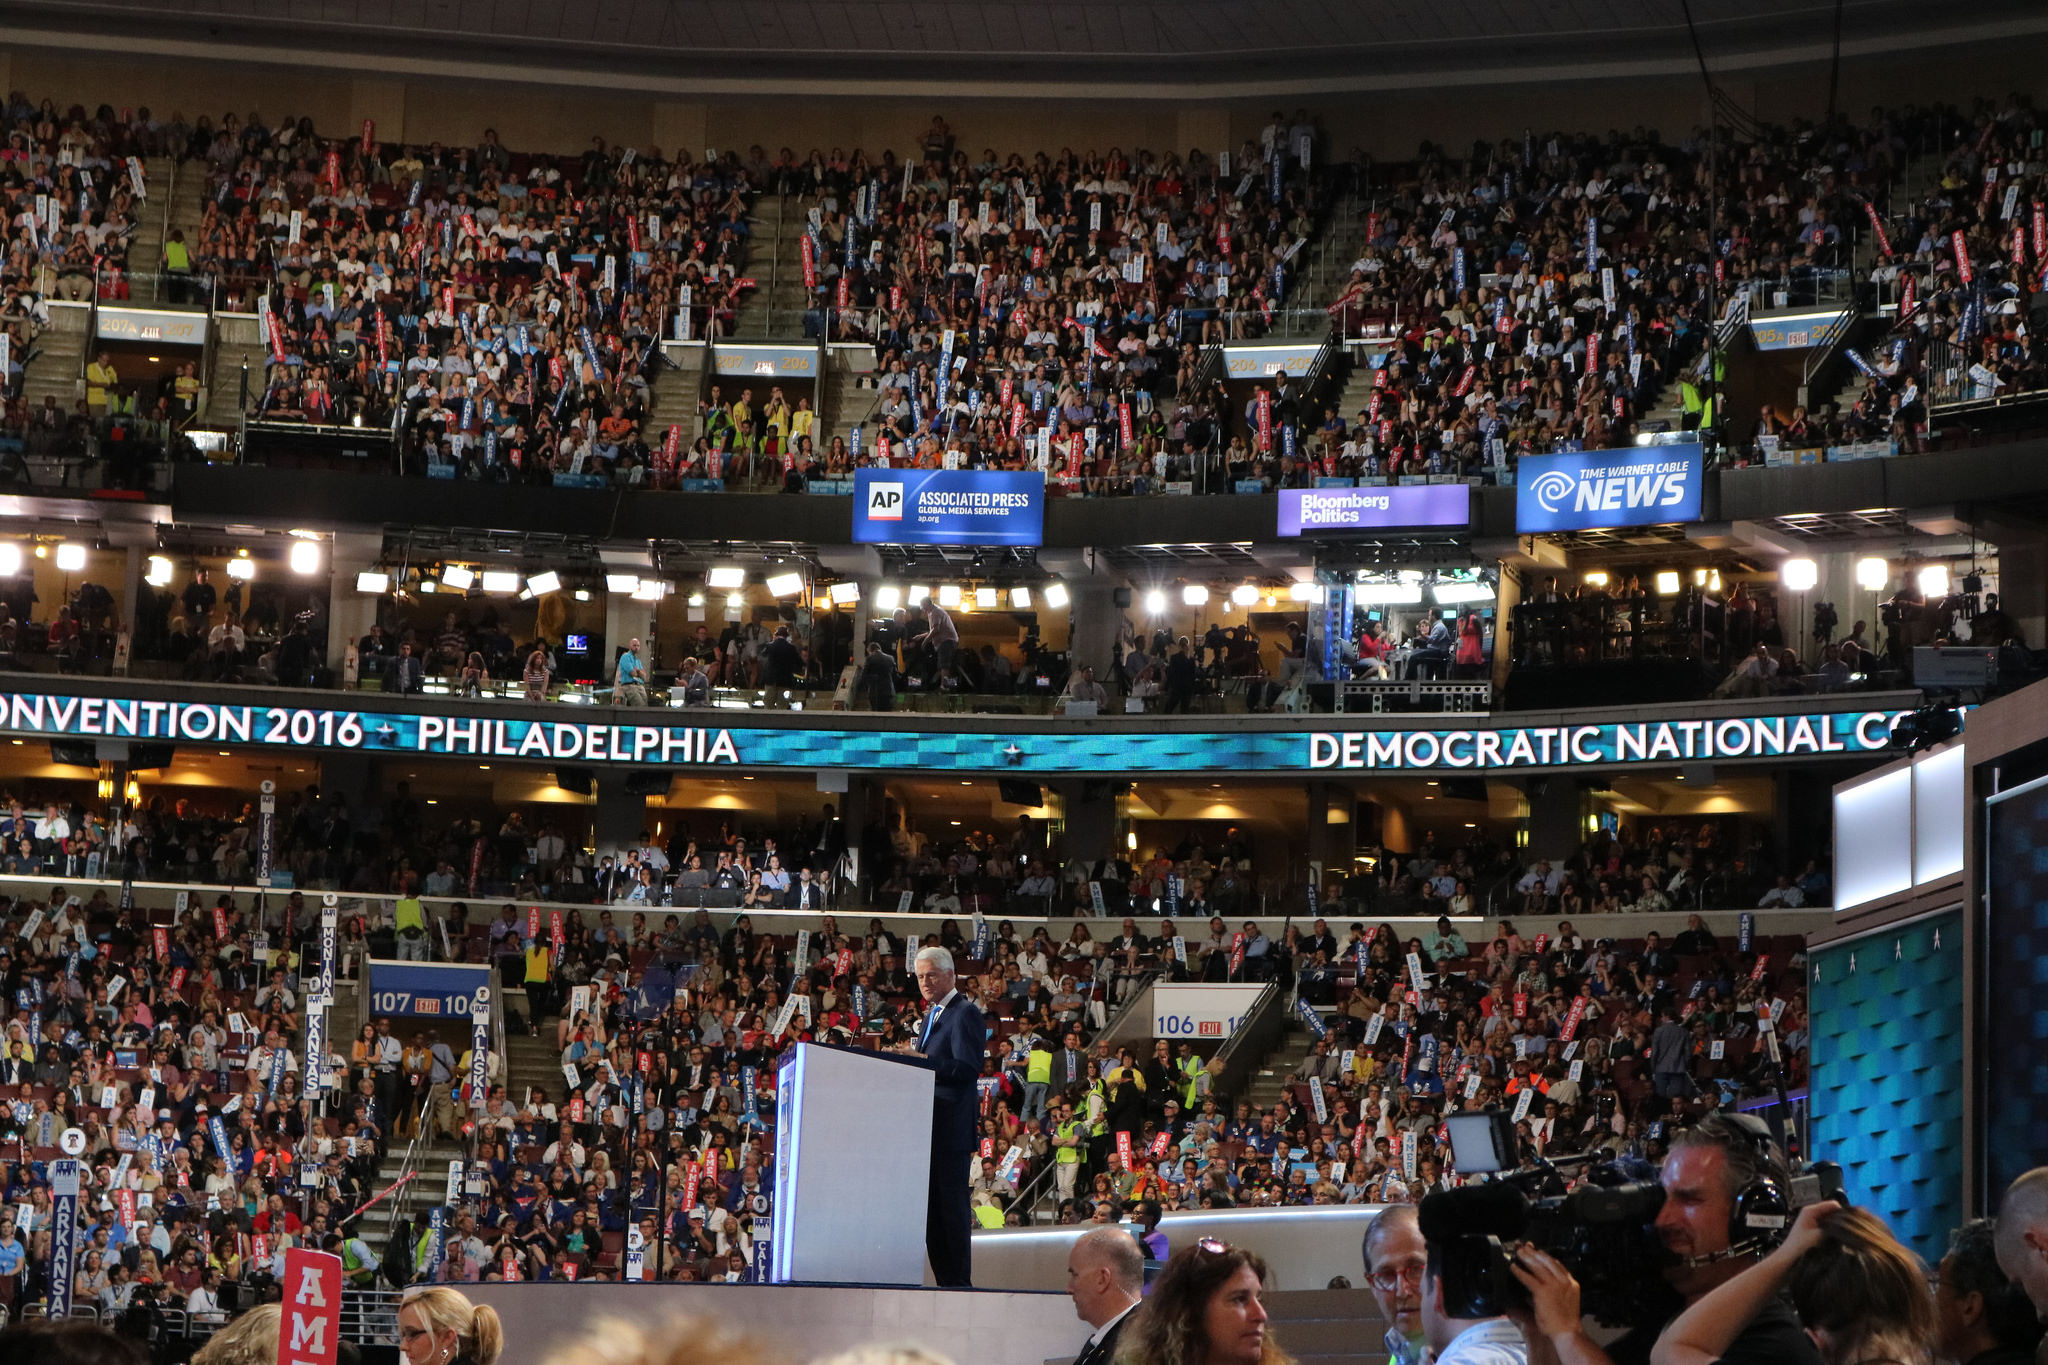 Bill Clinton speaking at the DNC, Photo courtesy of Haddad Media